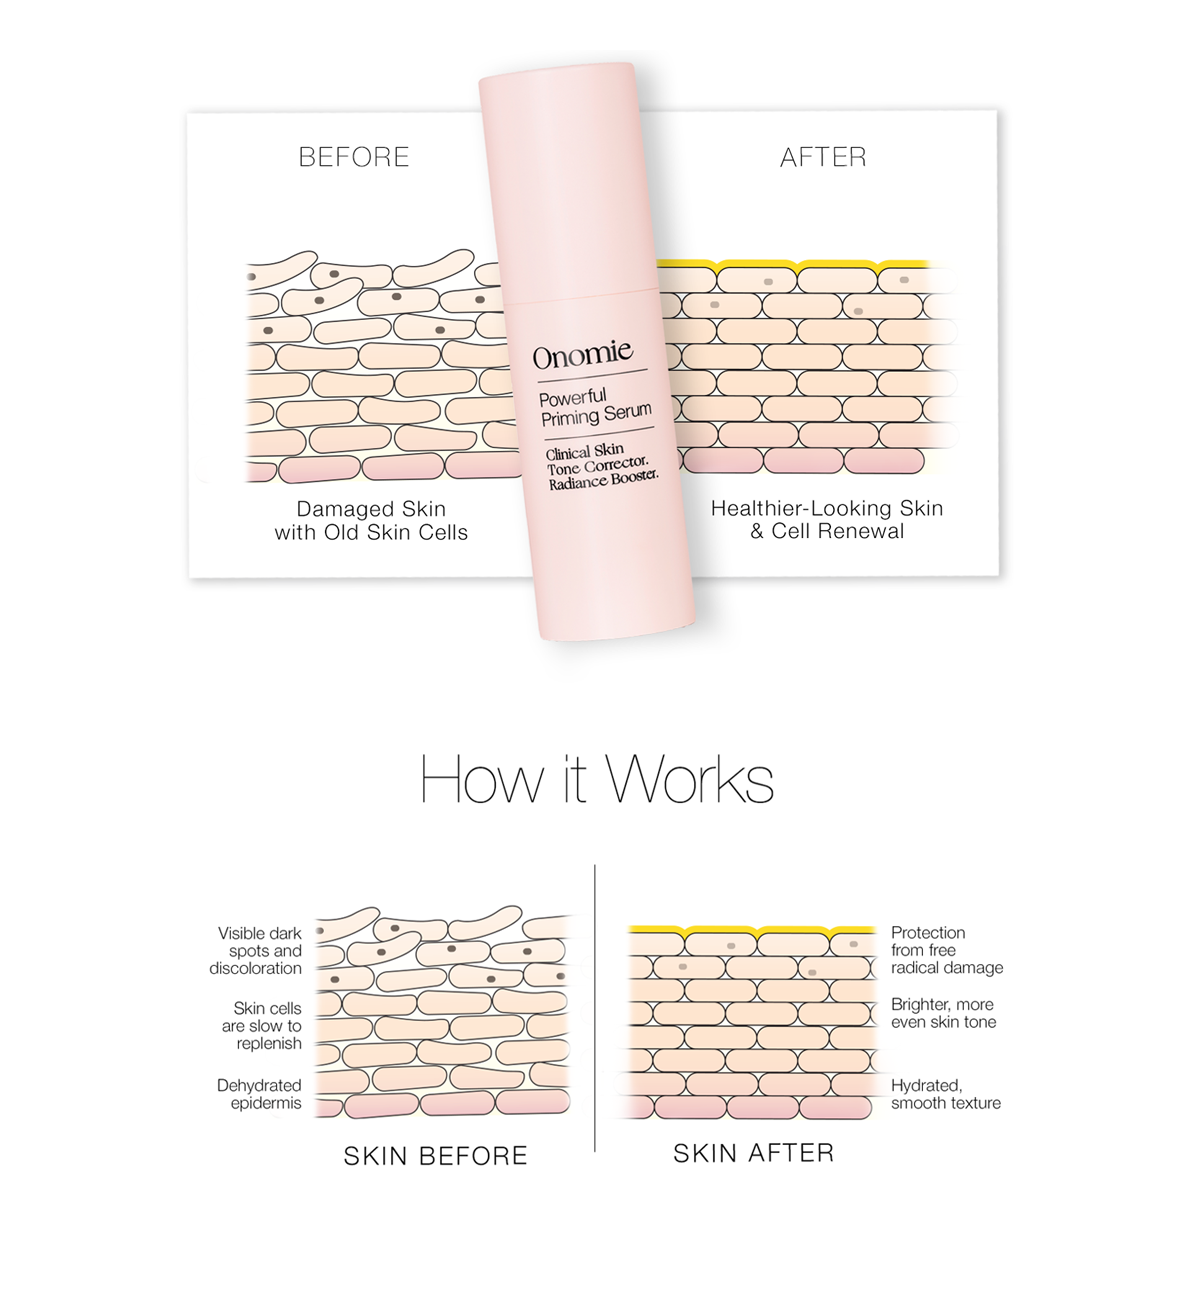 Powerful Priming Serum skin illustration as part of an e-mail campaign.